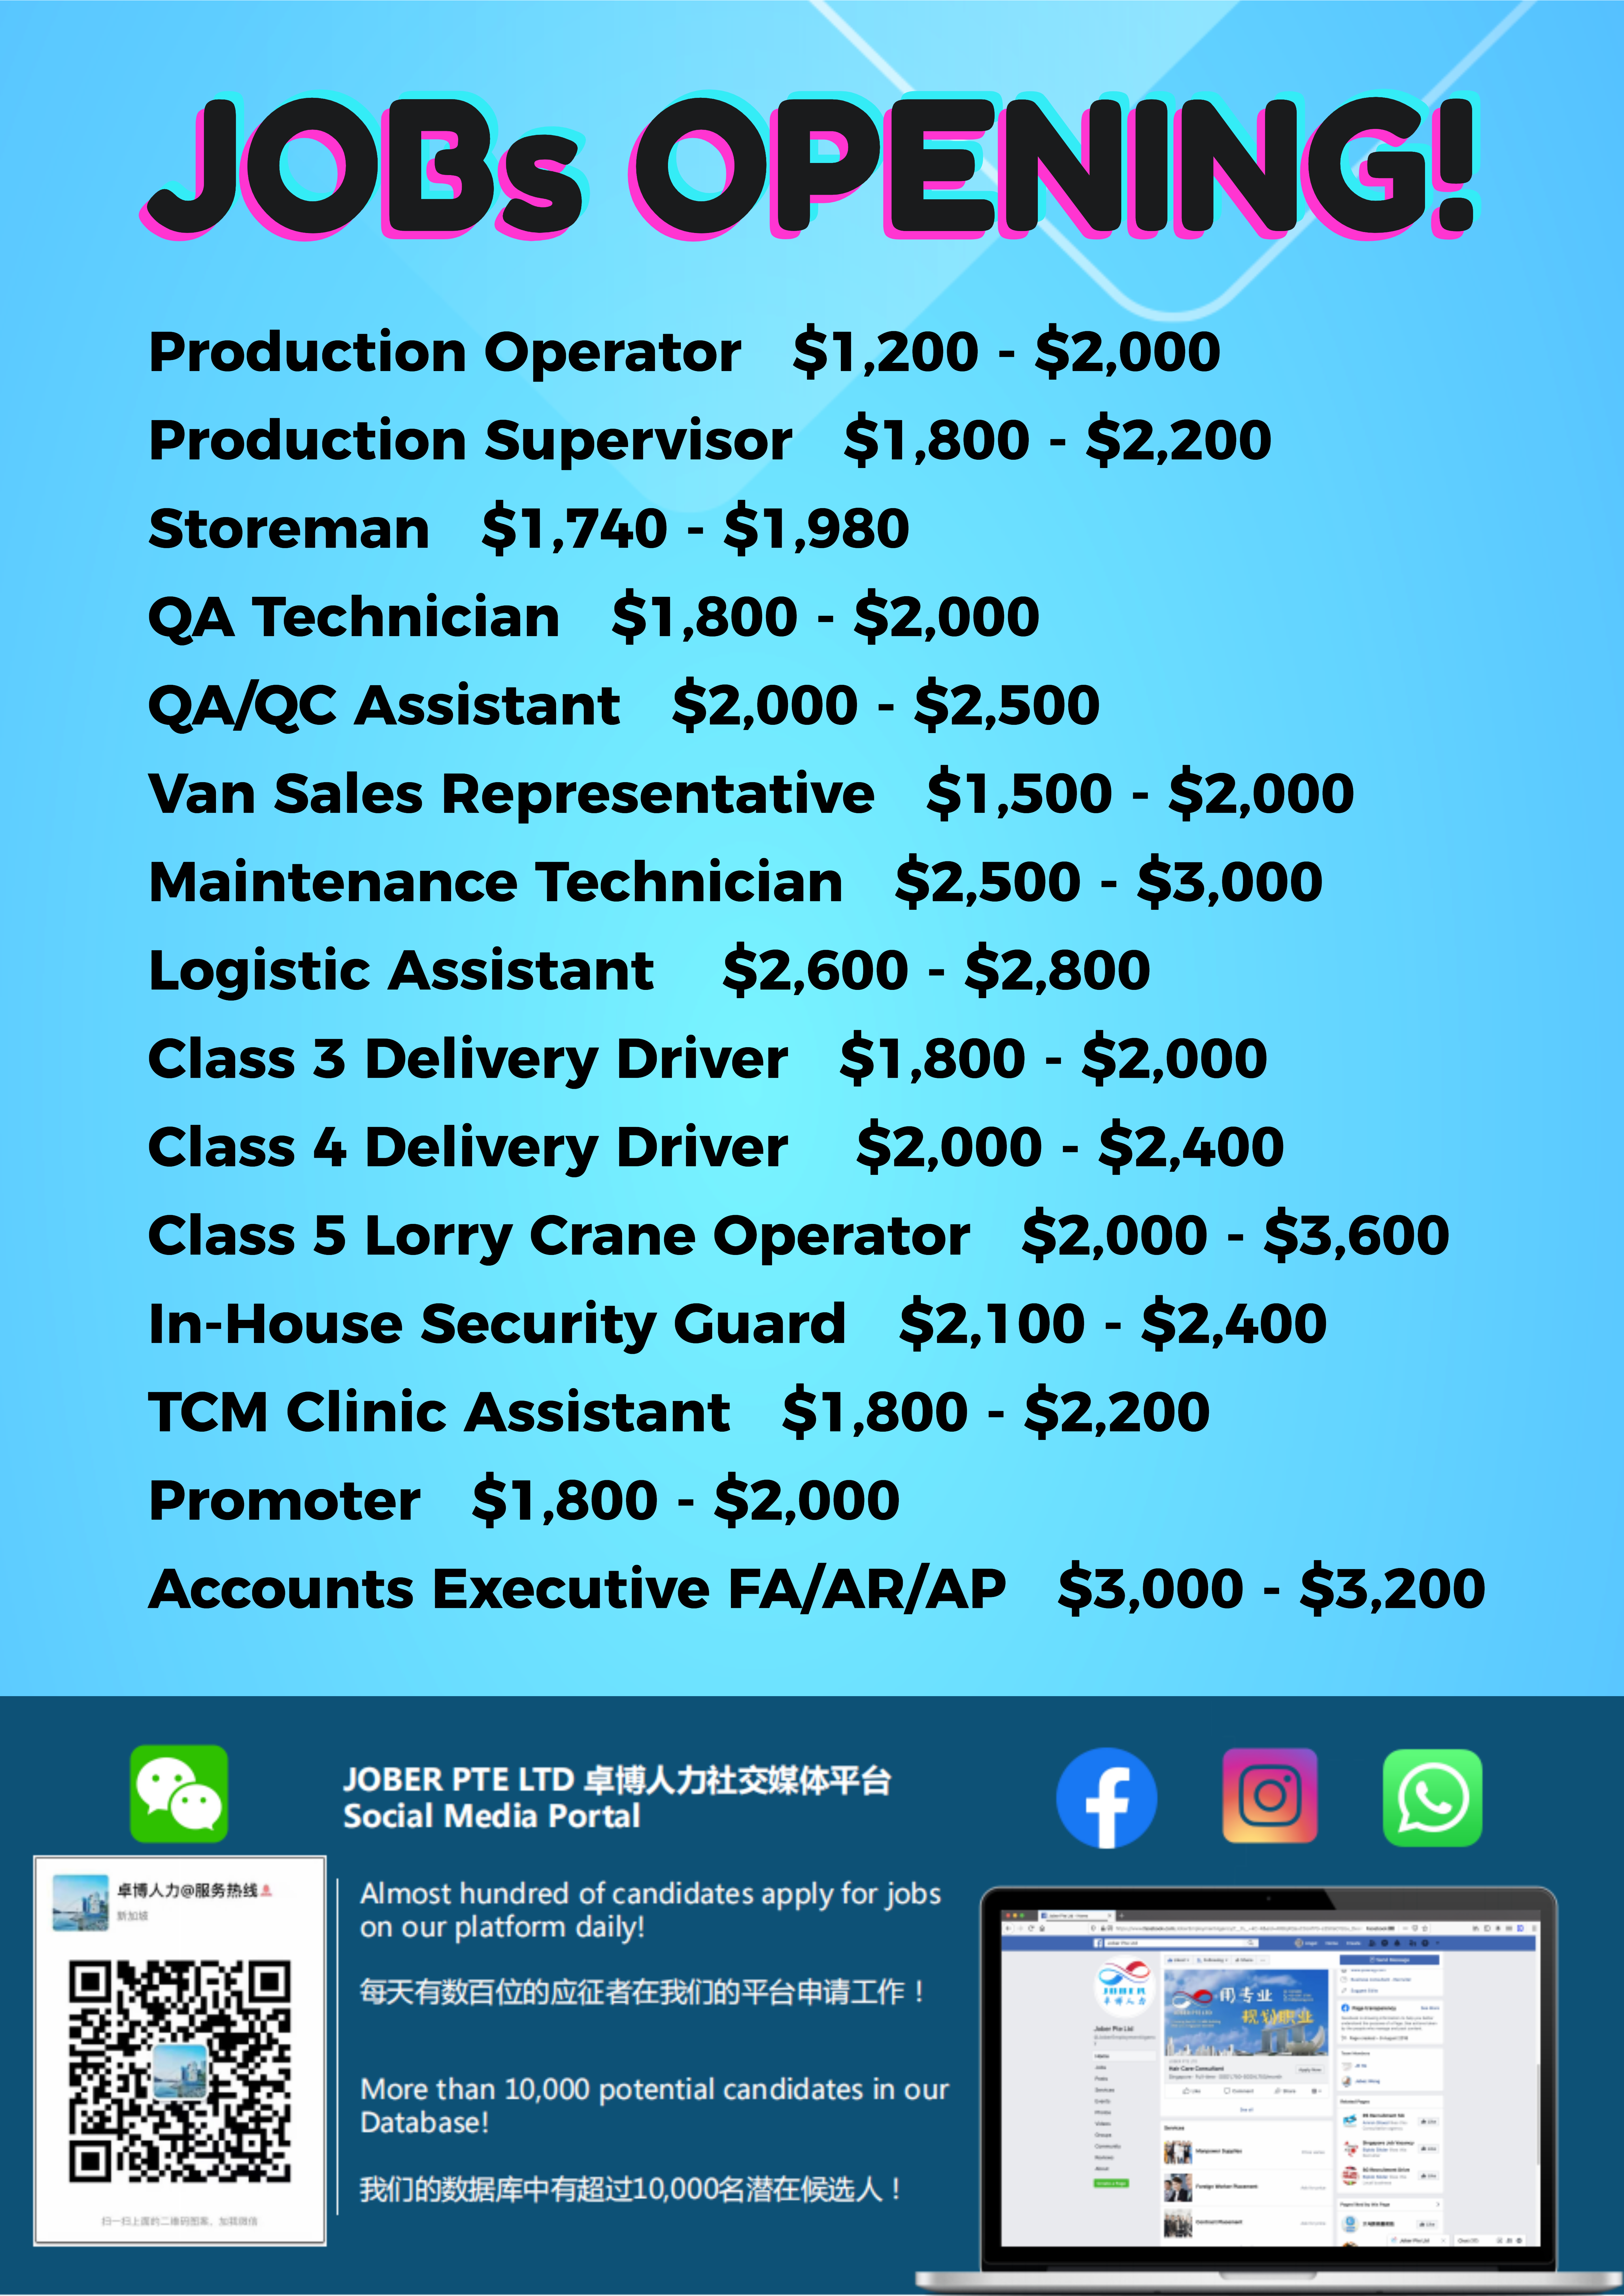 Full-time Jobs Available